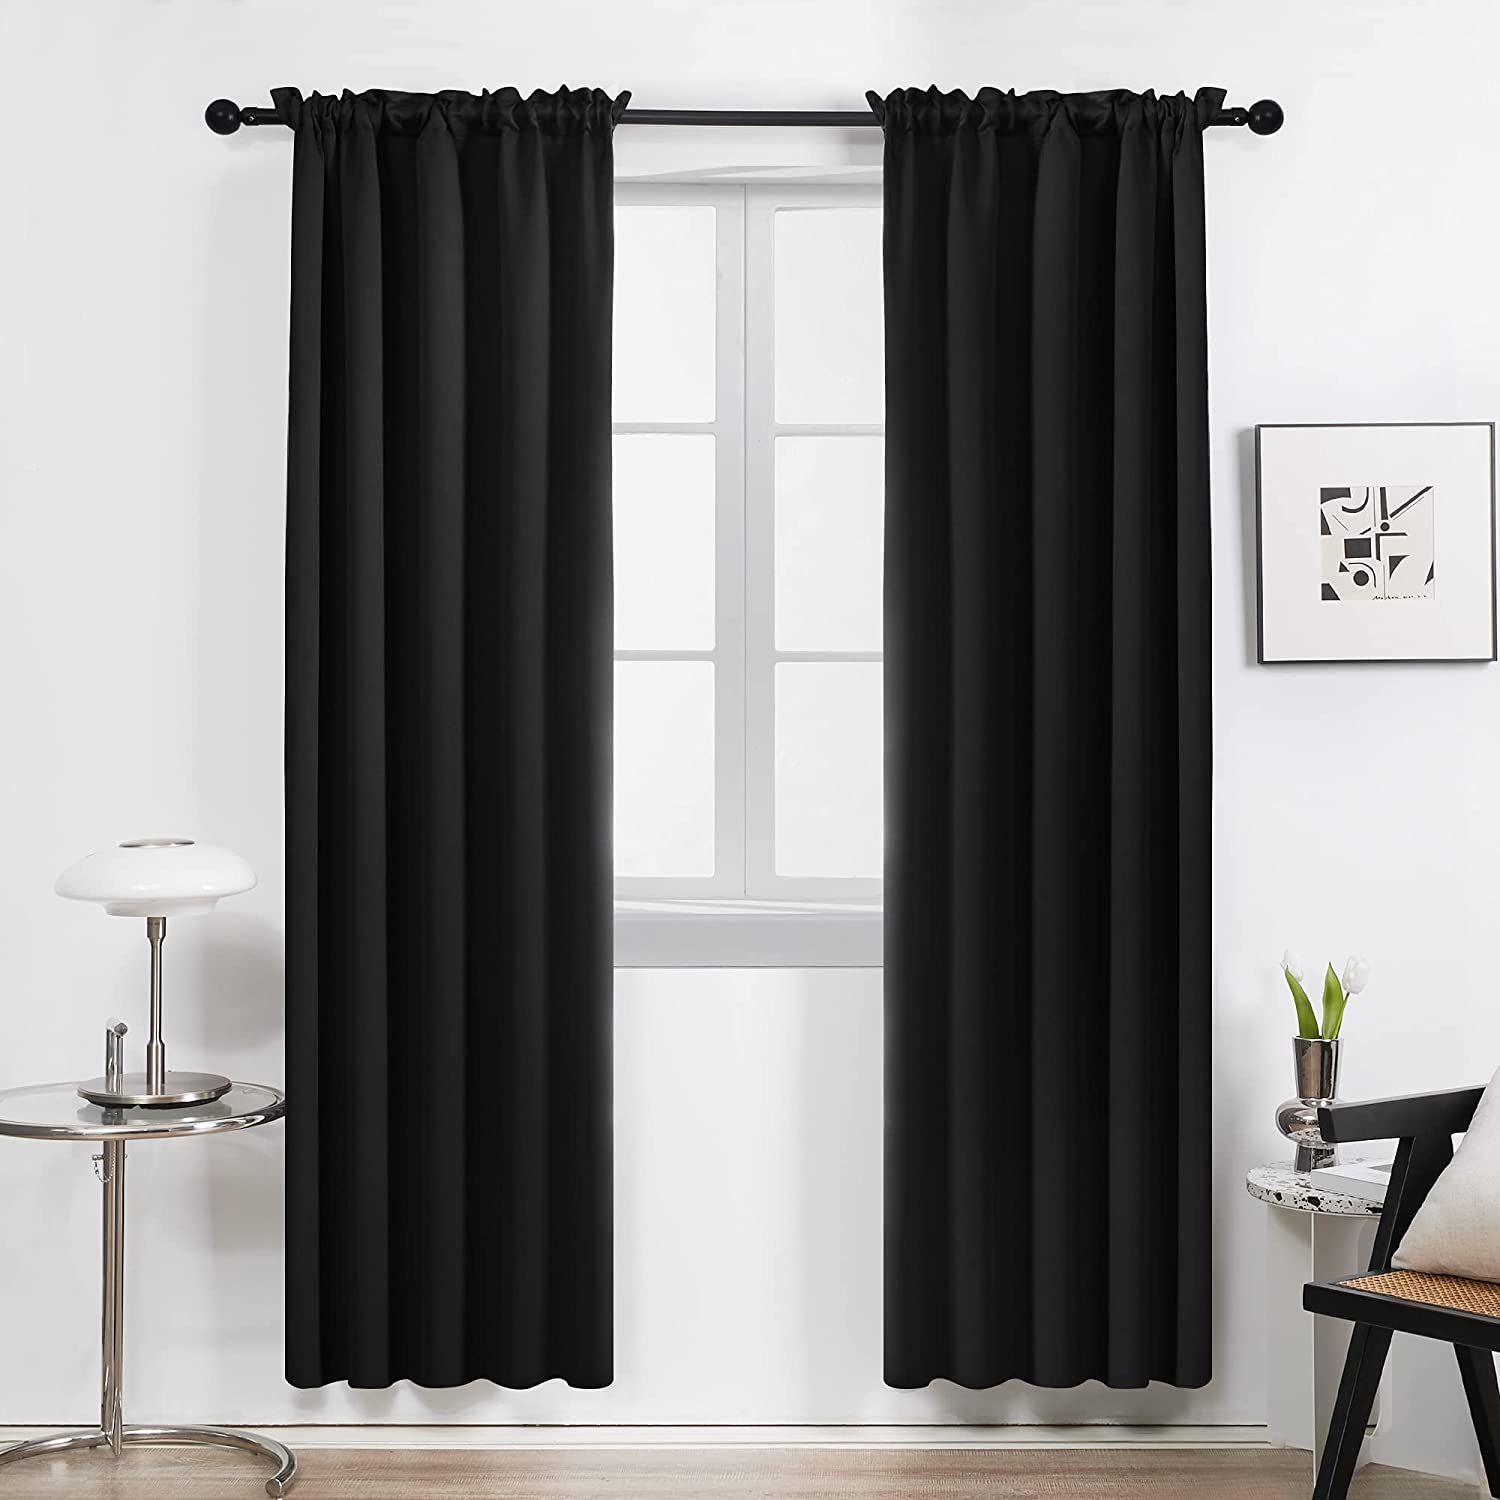 Deconovo Black Rod Pocket favorite Thermal safety Curtains Wi Insulated Blackout